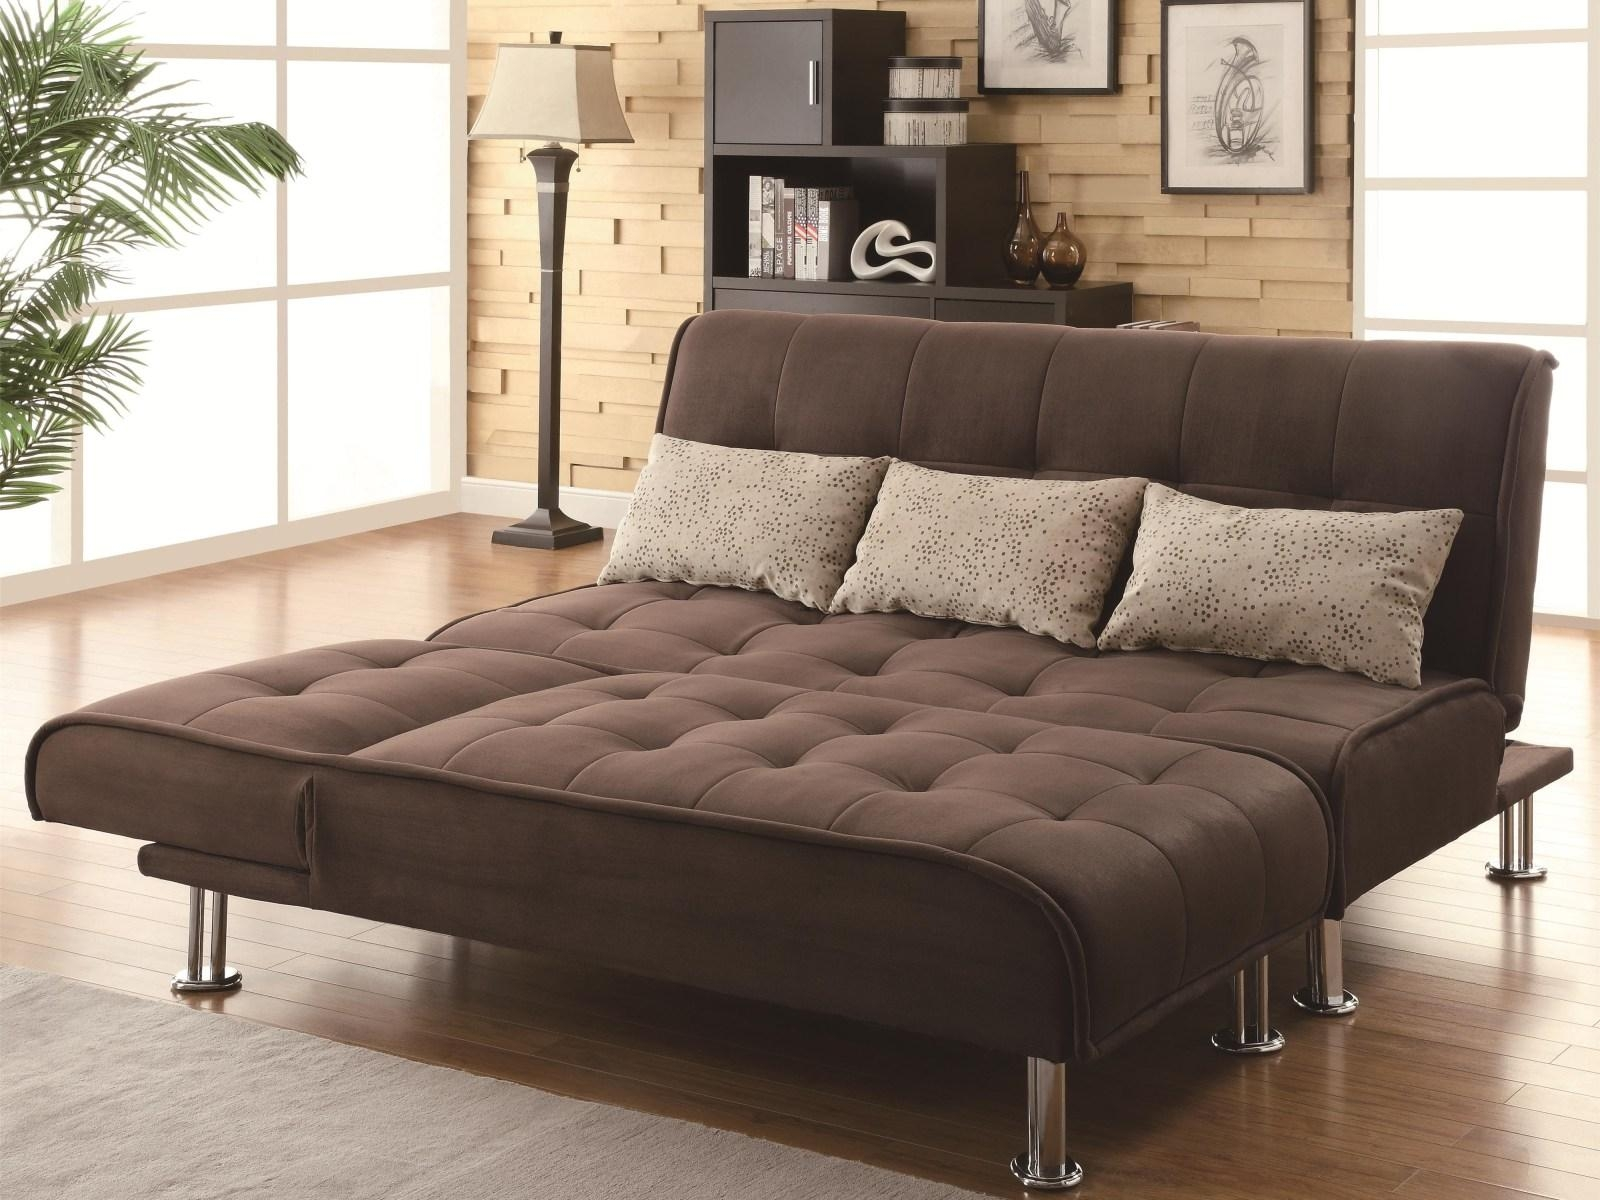 ▻ Sofa : 5 Wonderful Queen Size Couch Bed Dark Brown Color Regarding Sofa Sleepers Queen Size (View 8 of 20)